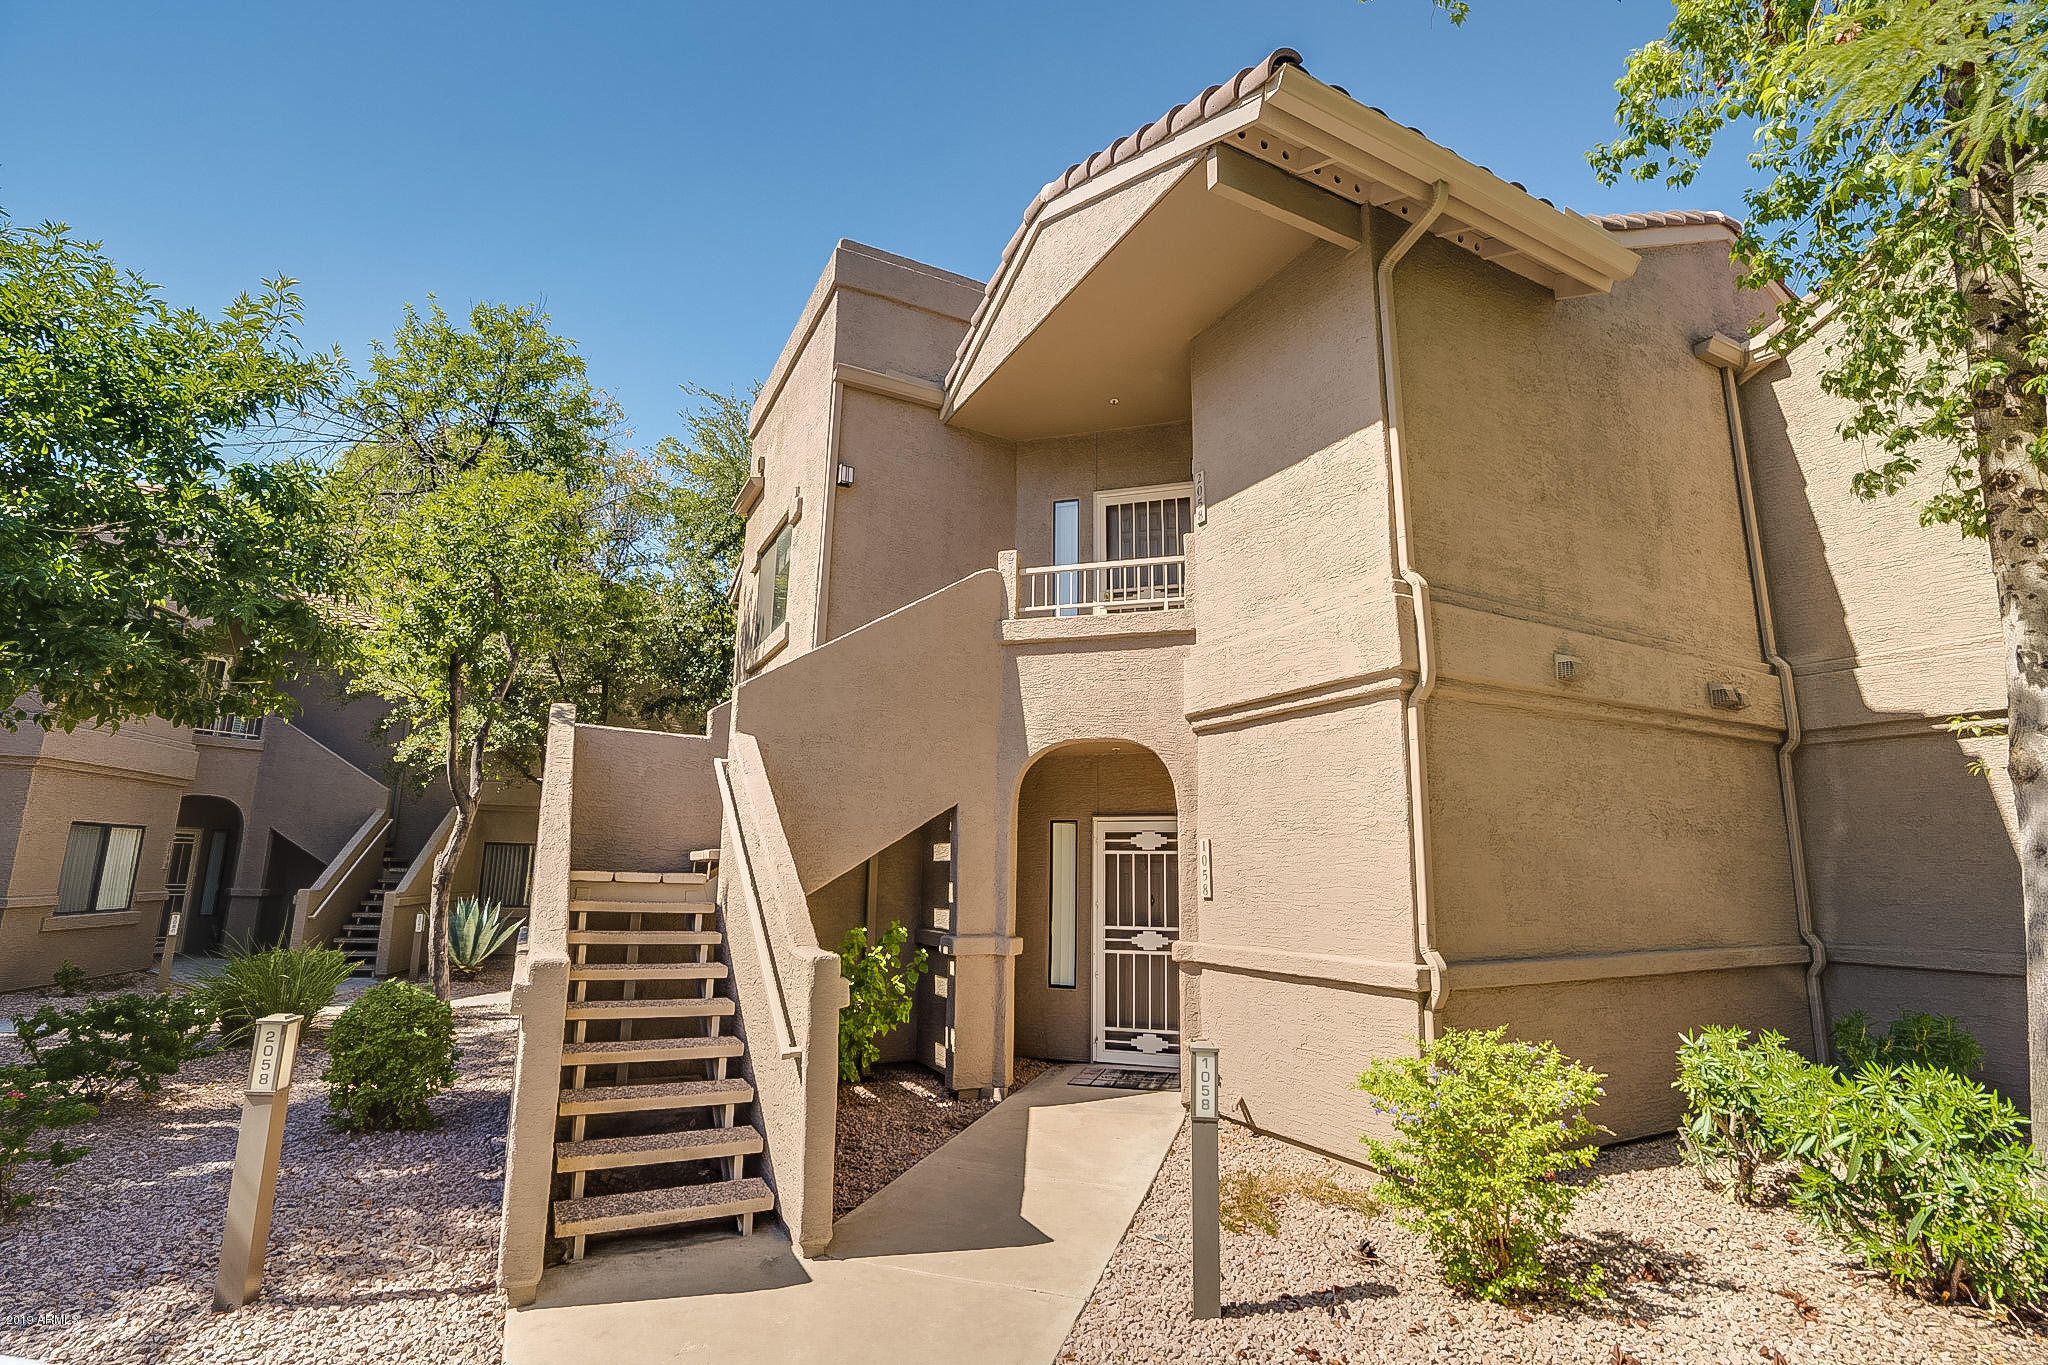 Photo of 15050 N THOMPSON PEAK Parkway #2058, Scottsdale, AZ 85260